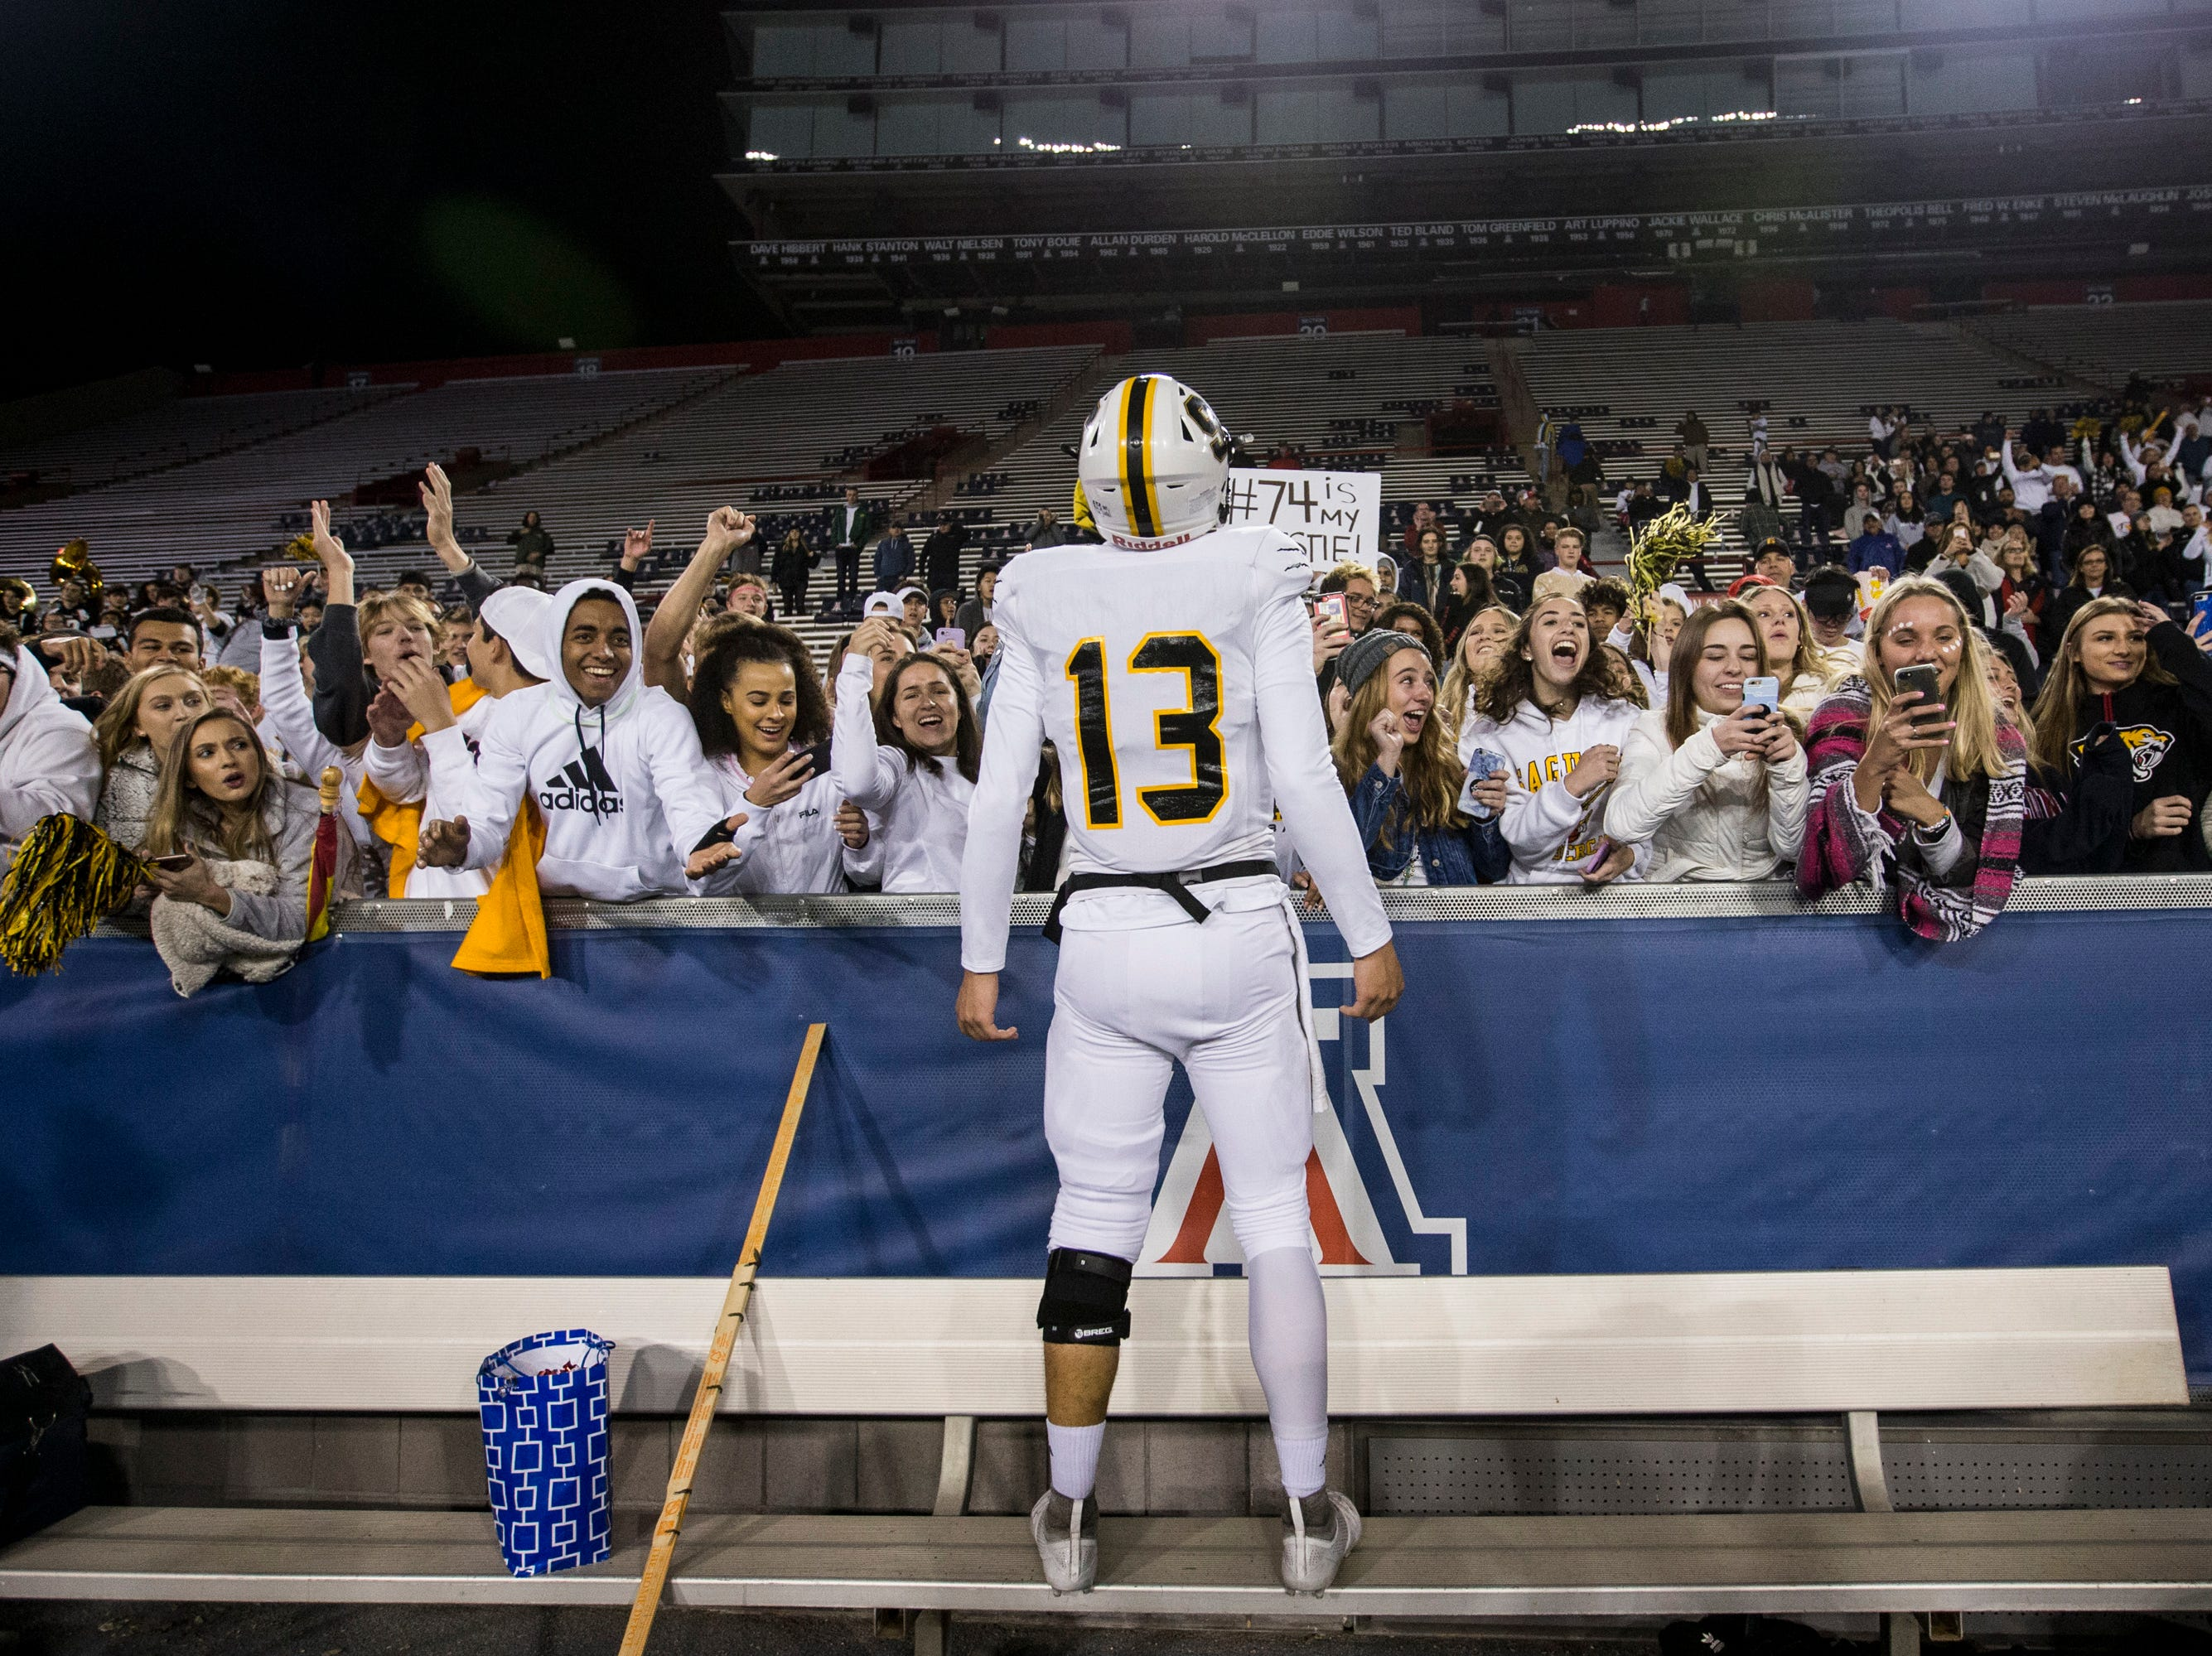 Saguaro's Tyler Beverett celebrates after defeating Salpointe for the 4A State Championship on Friday, Nov. 30, 2018, at Arizona Stadium in Tucson, Ariz. Saguaro won, 42-16.